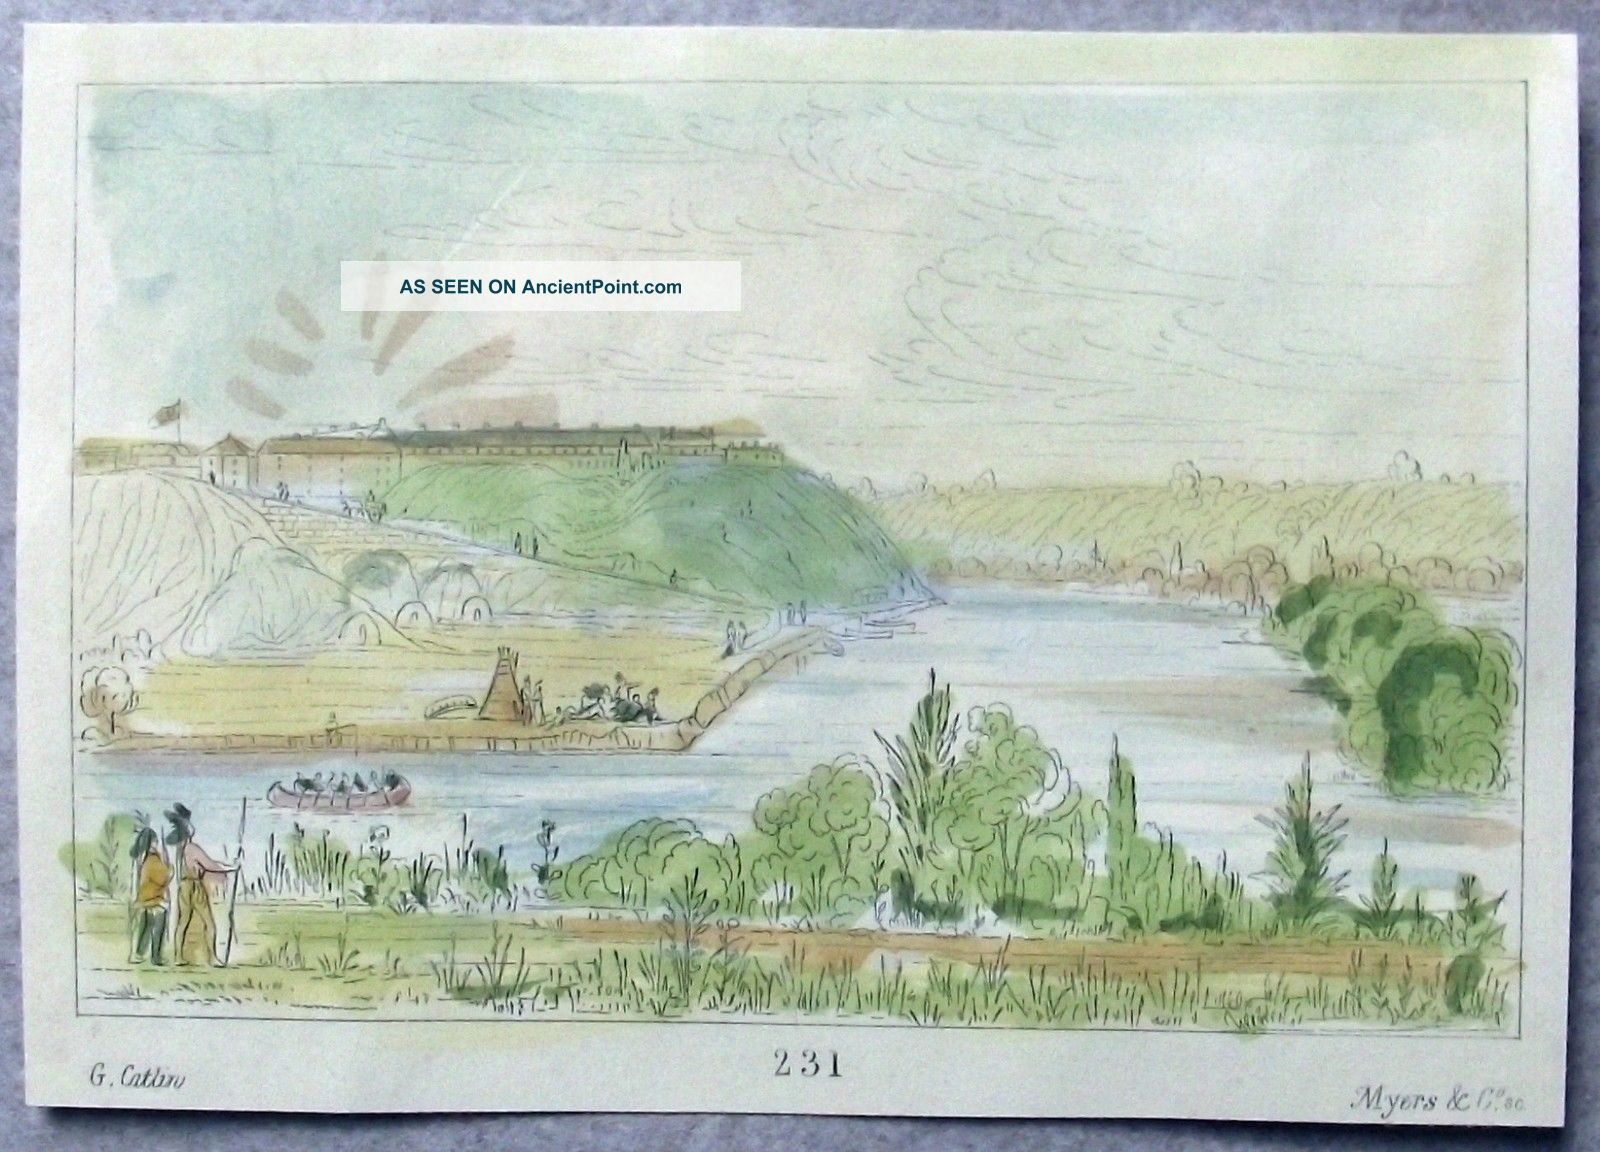 1842 G.  Catlin Handcol Engraving Native American Indians Fort Snelling Native American photo